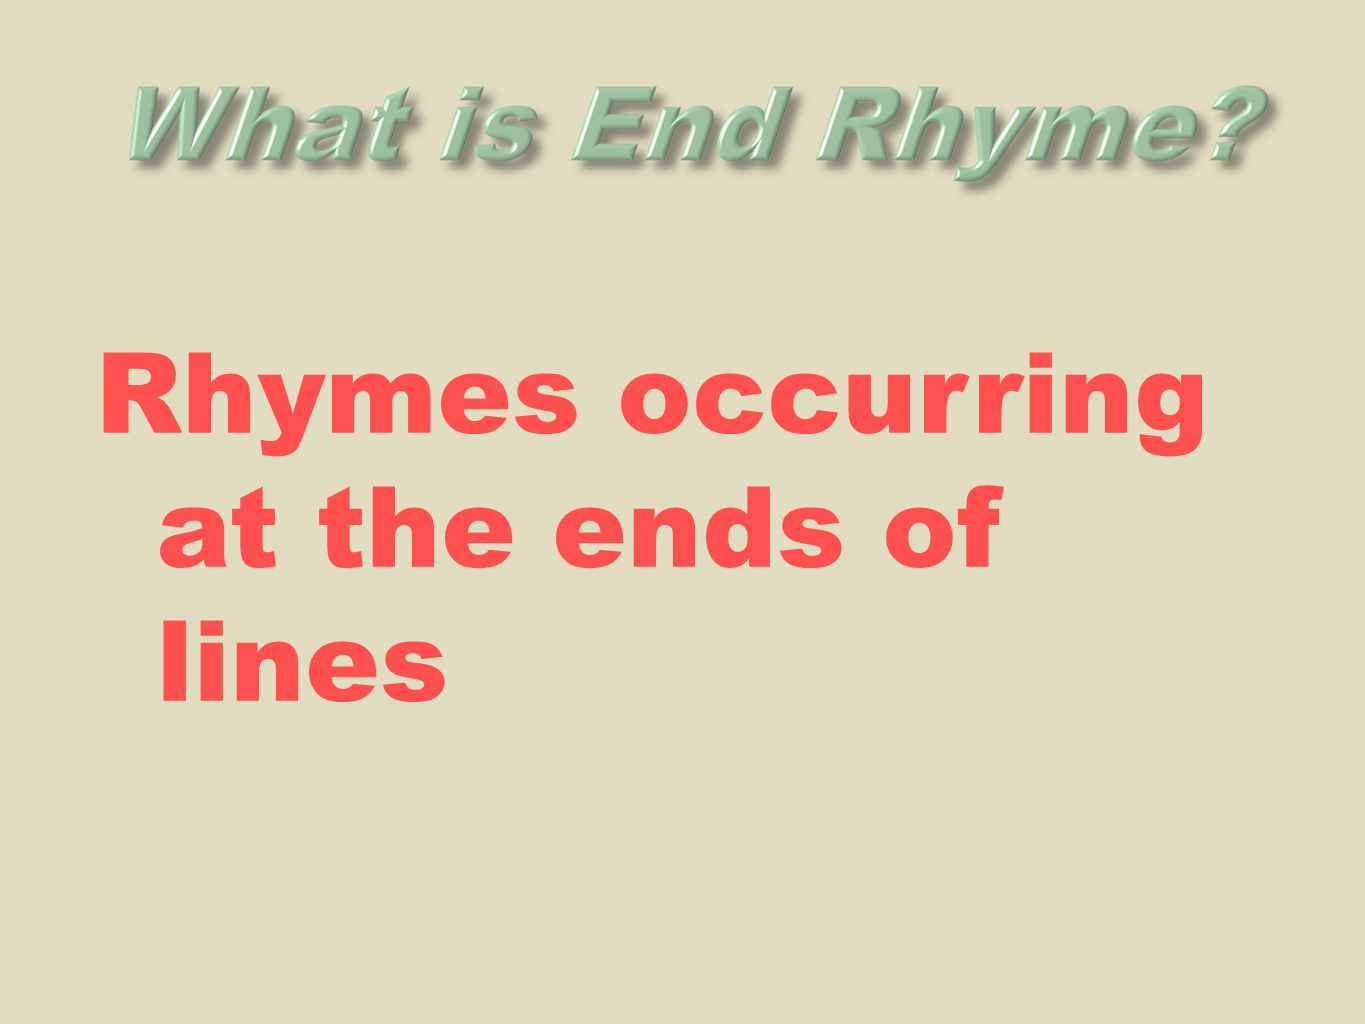 Rhymes occurring at the ends of lines